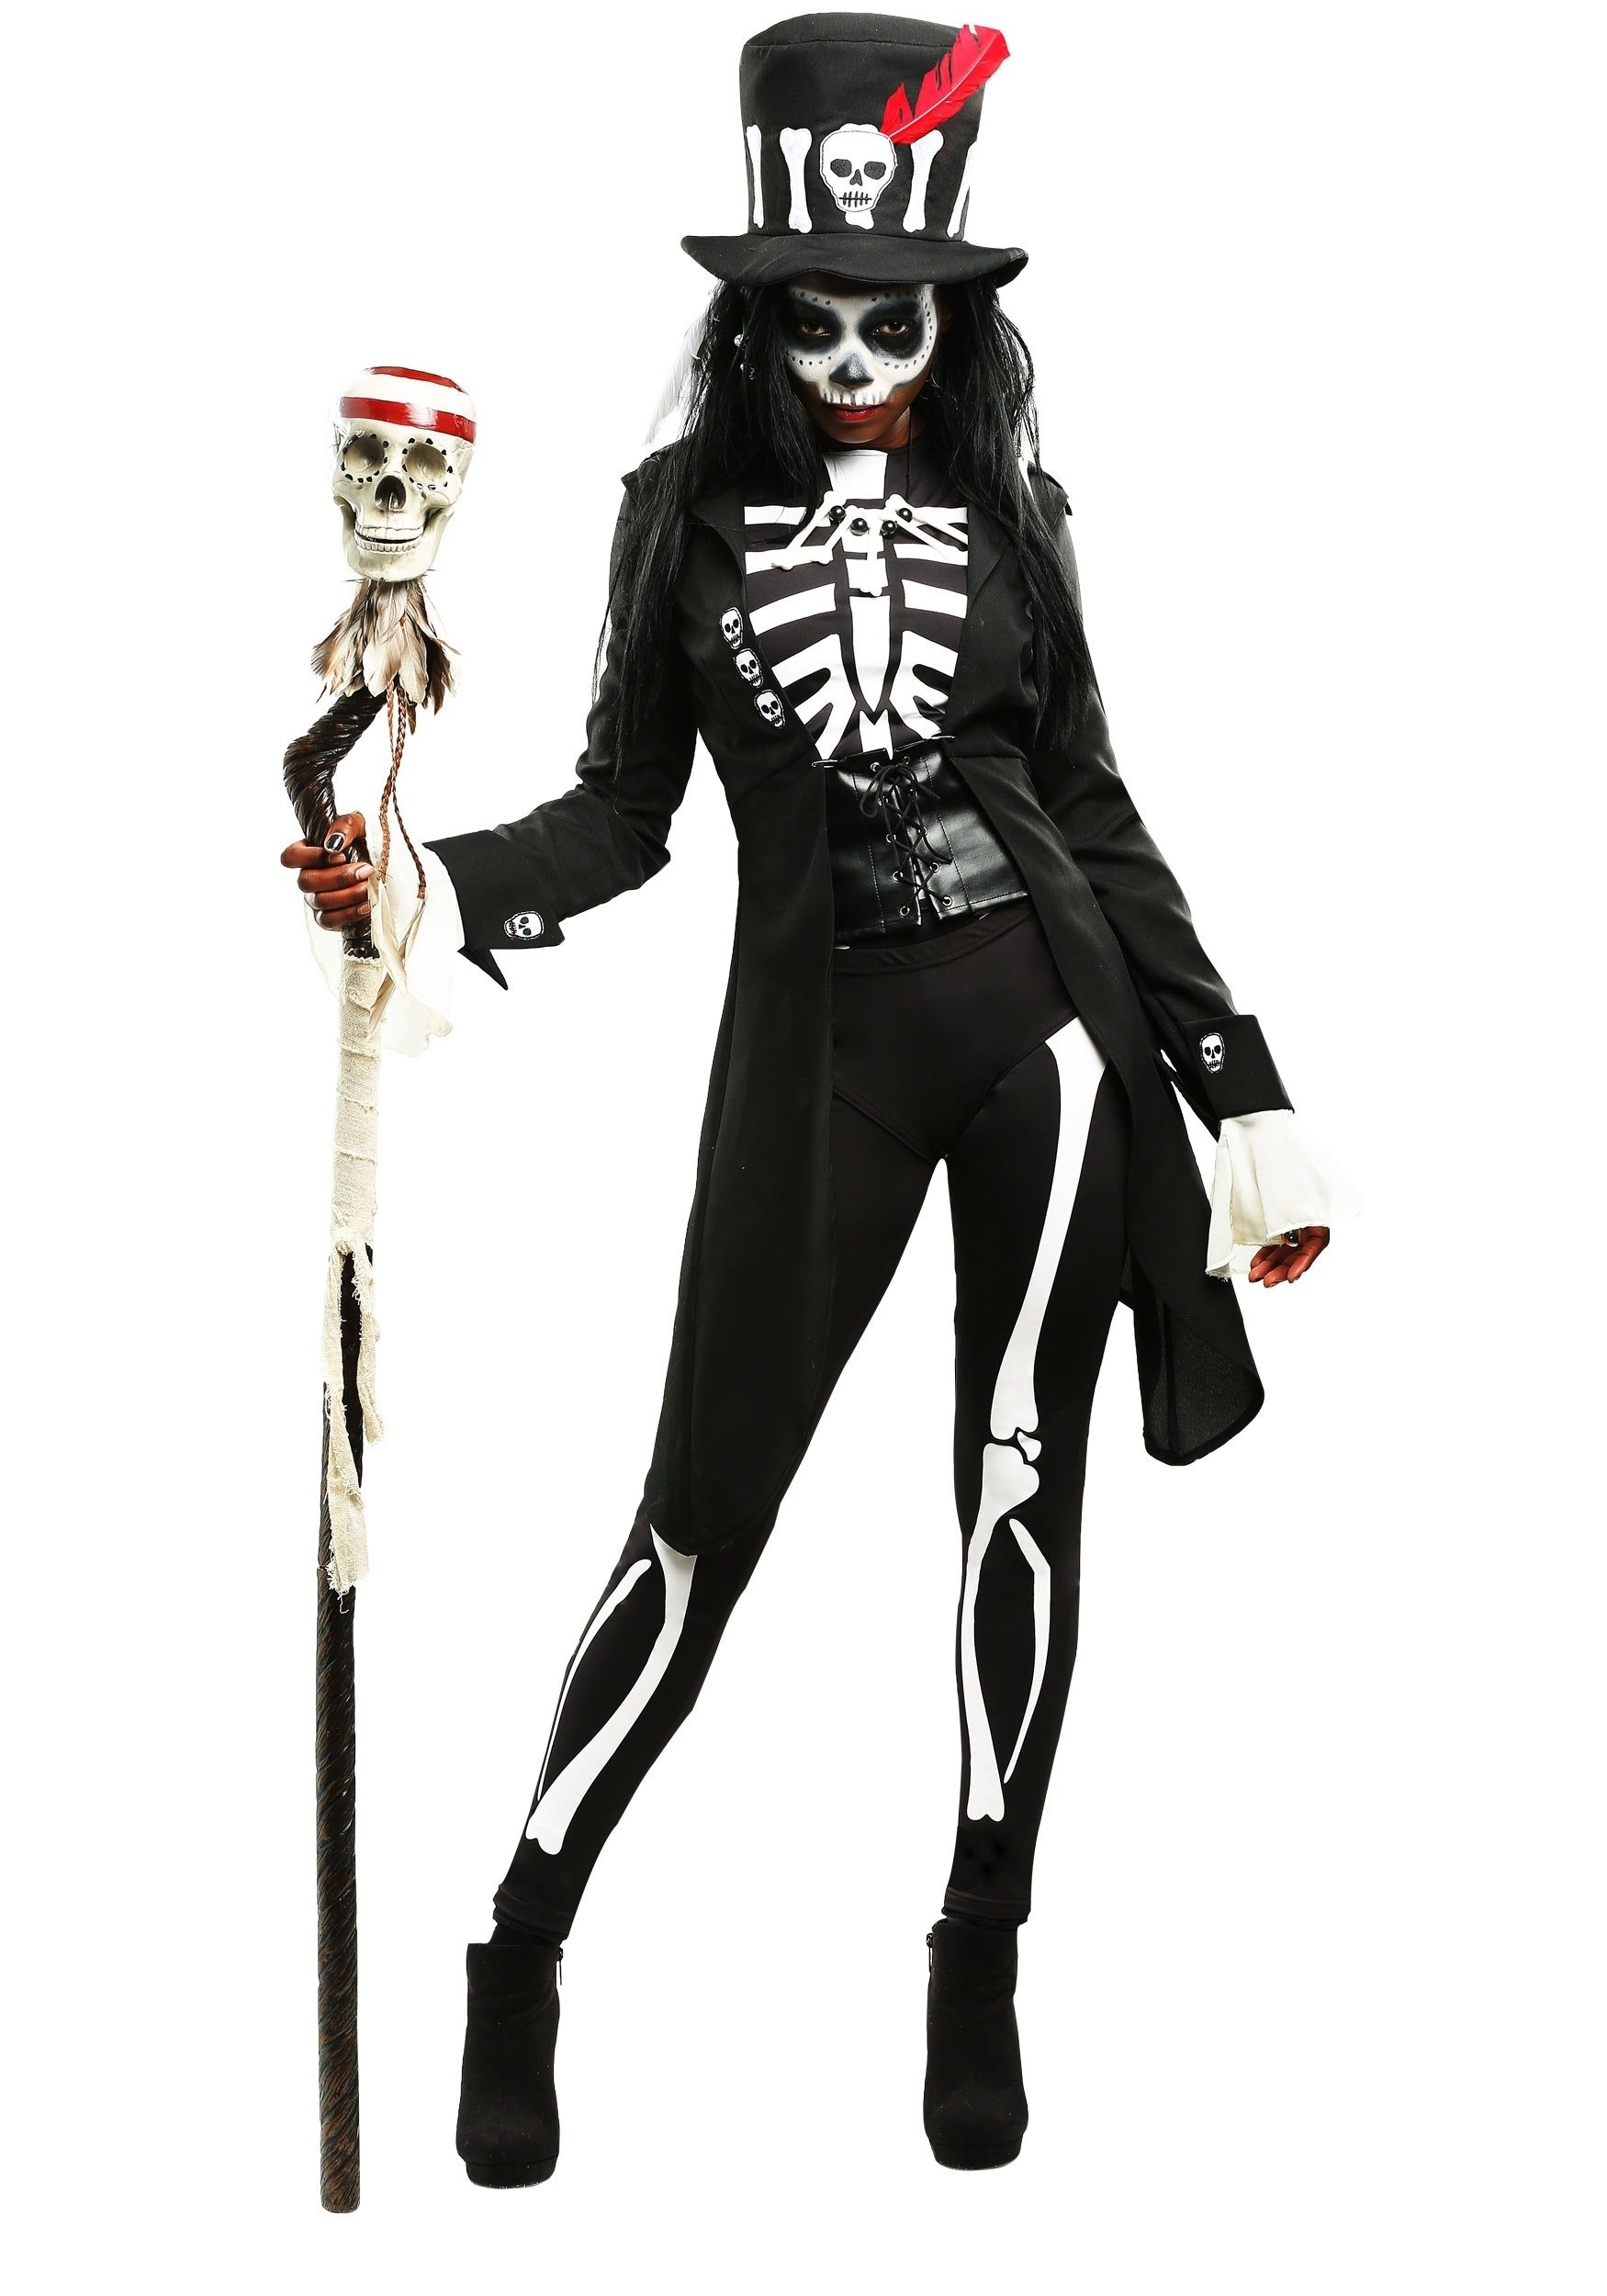 10 Spectacular Scary Halloween Costume Ideas For Women voodoo skeleton costume for women 2020